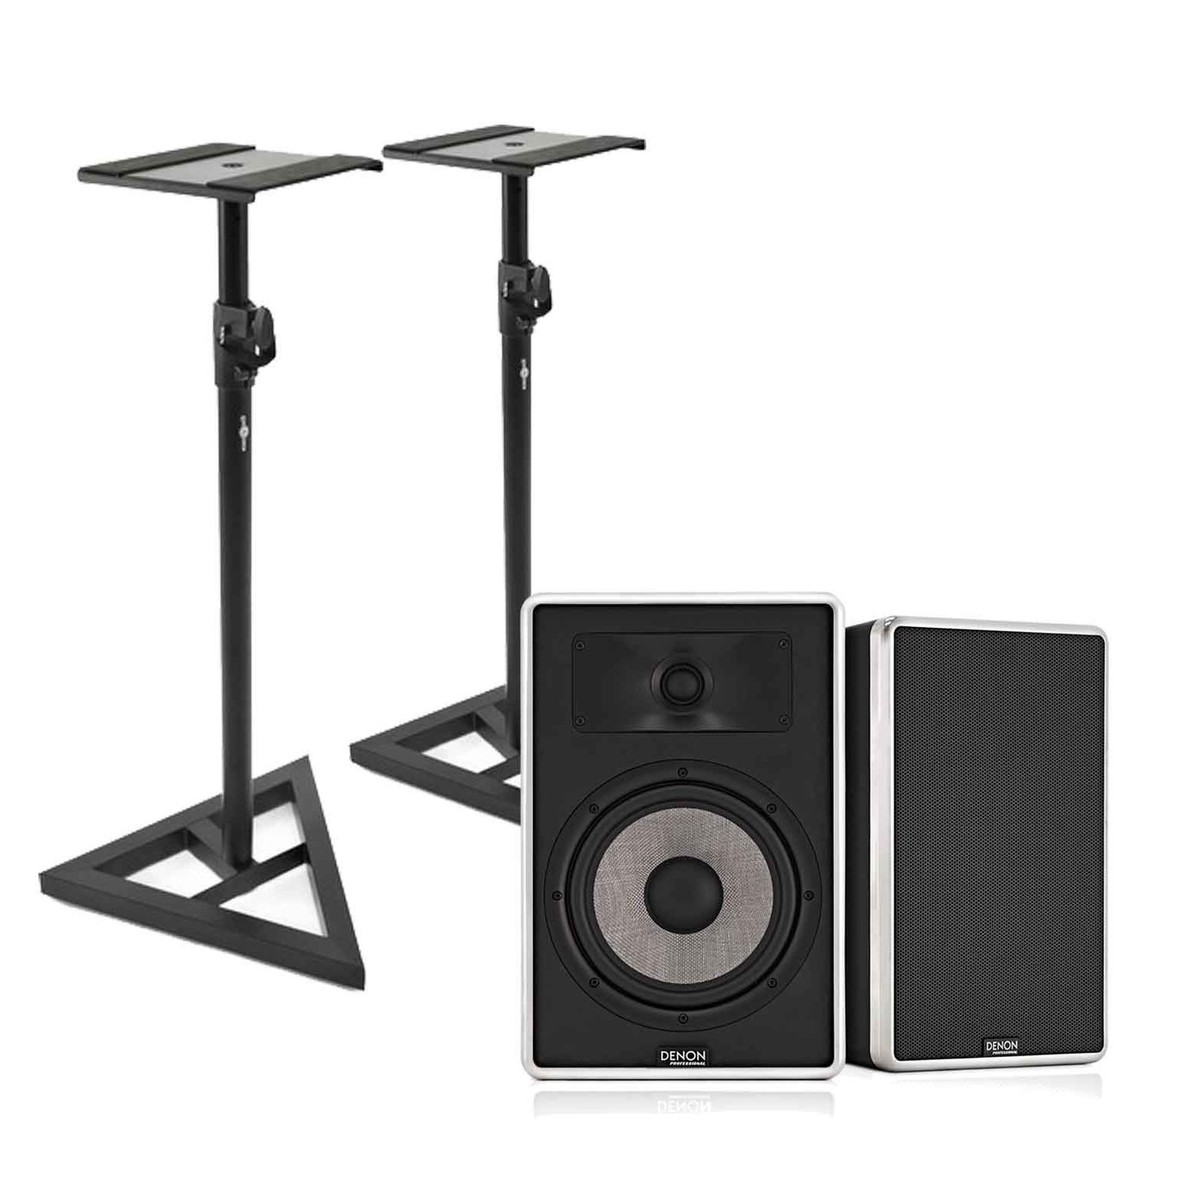 Image of Denon DN-306S Studio Monitors with Free Stands Pair